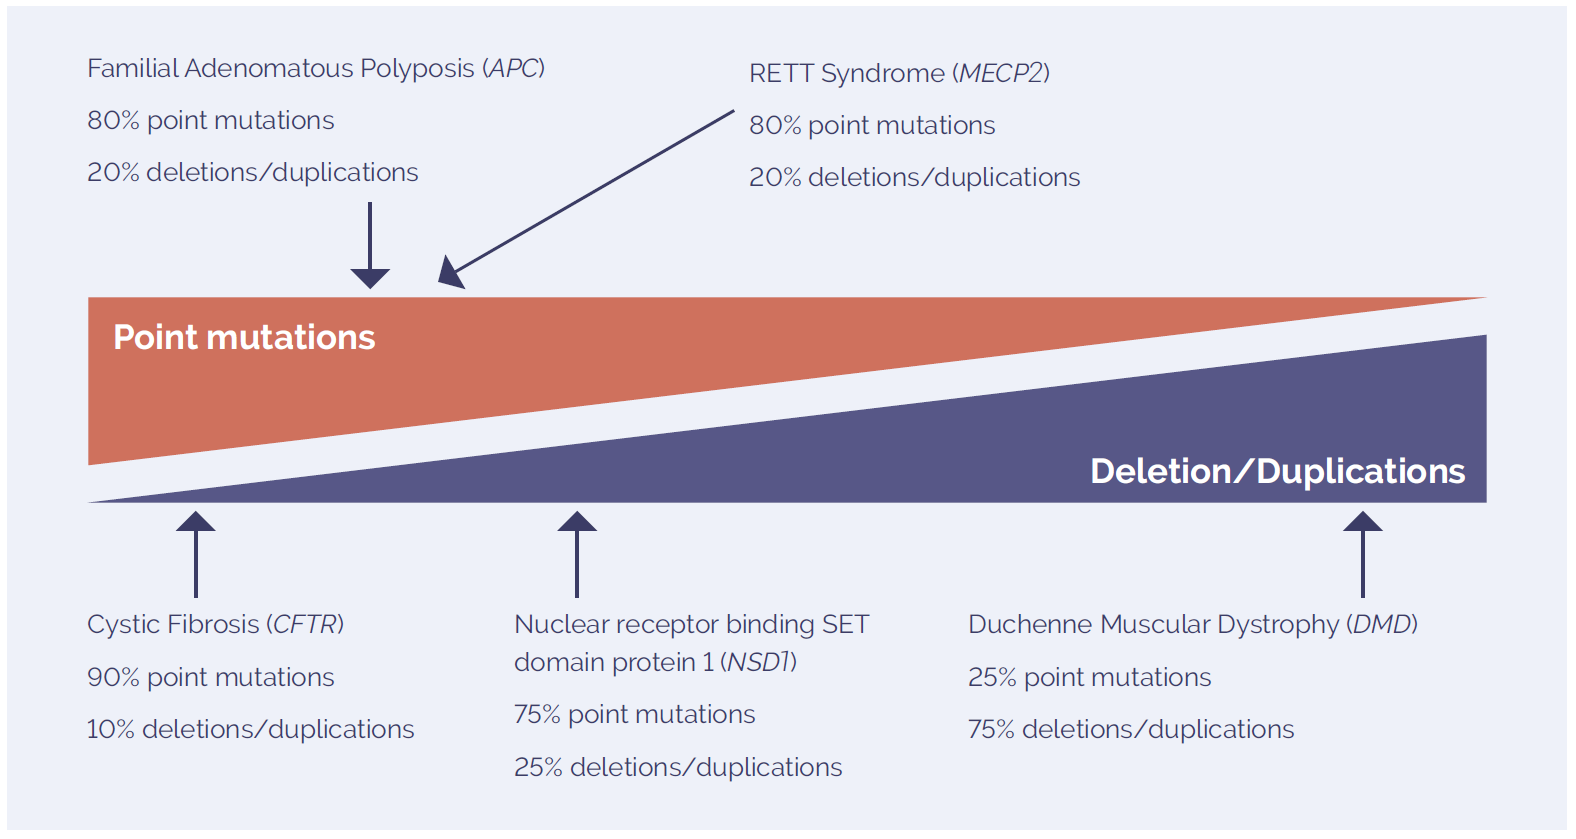 Figure 1: The mutation spectrum of molecular disorders includes point mutations and deletions and duplications. The prevalence of each type of variant is highly dependent on the disease studied.